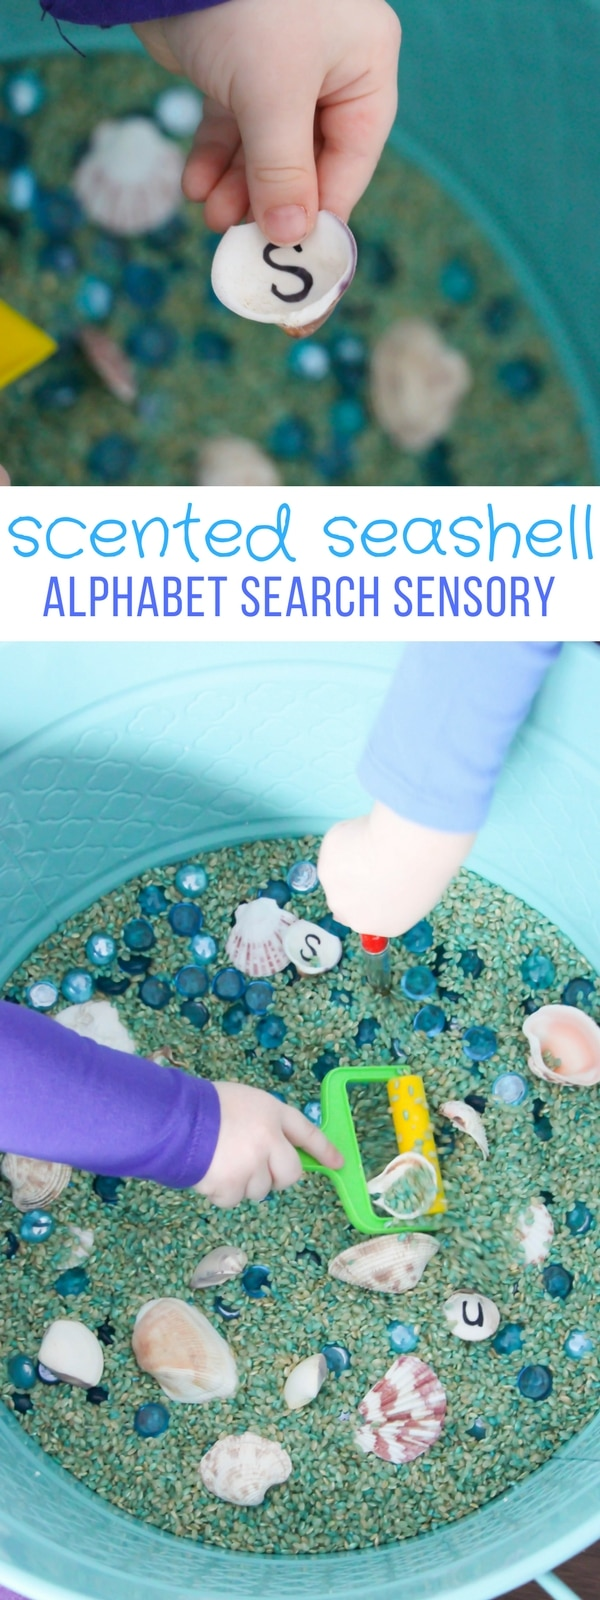 As the summer gets closer, my kids and I are equally anxious for lazy beach days so I thought a Tropical-scented Seashell Alphabet Search Bin would be a great way to close out the year.